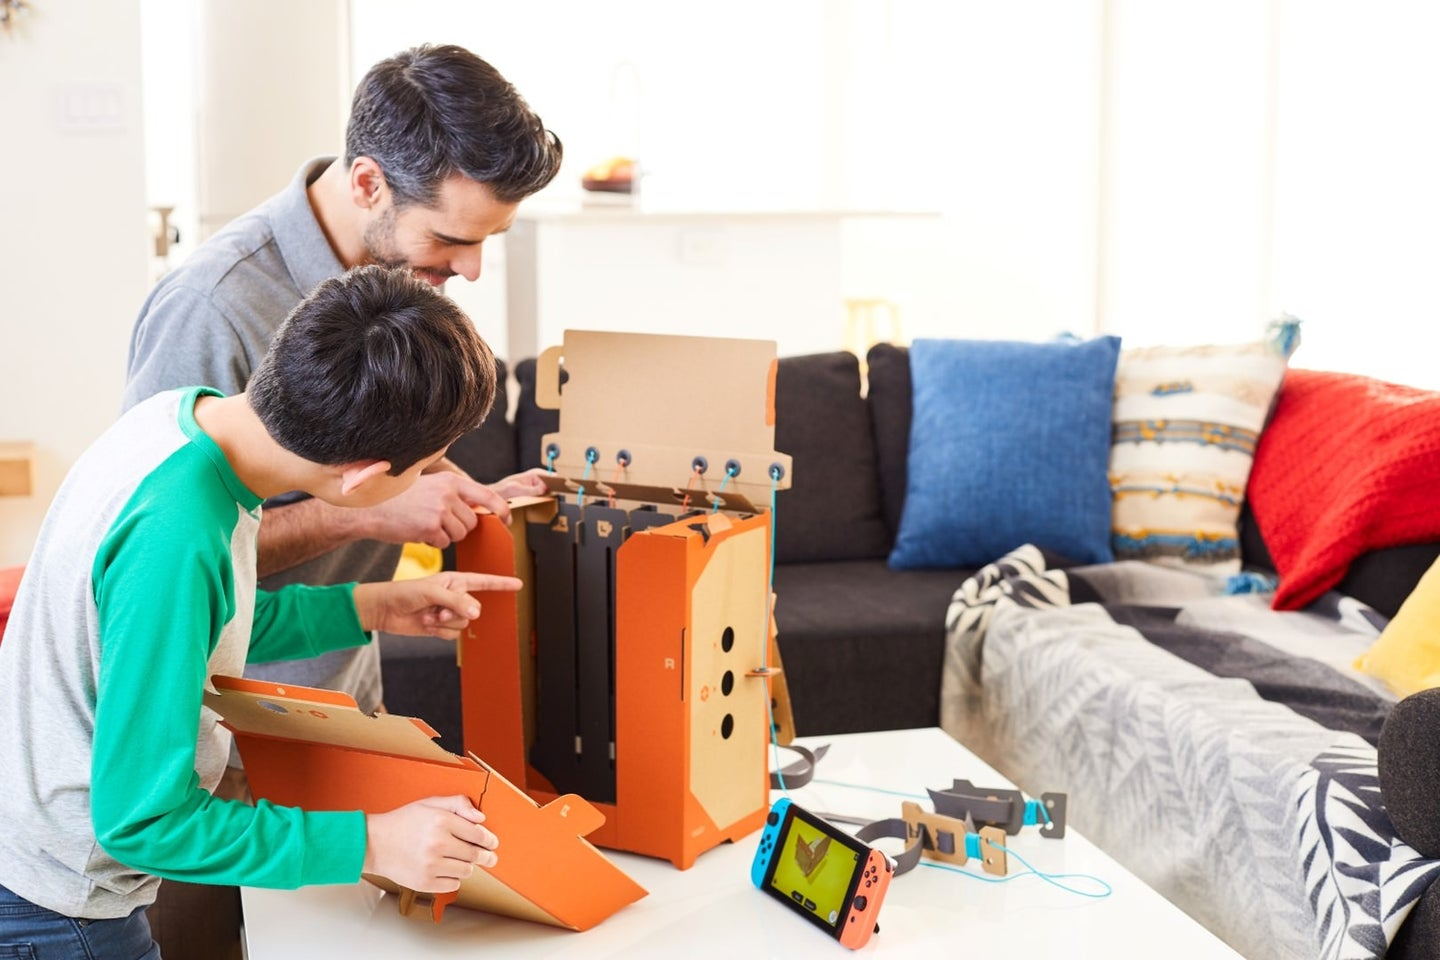 Nintendo Labo gives you new ways to play